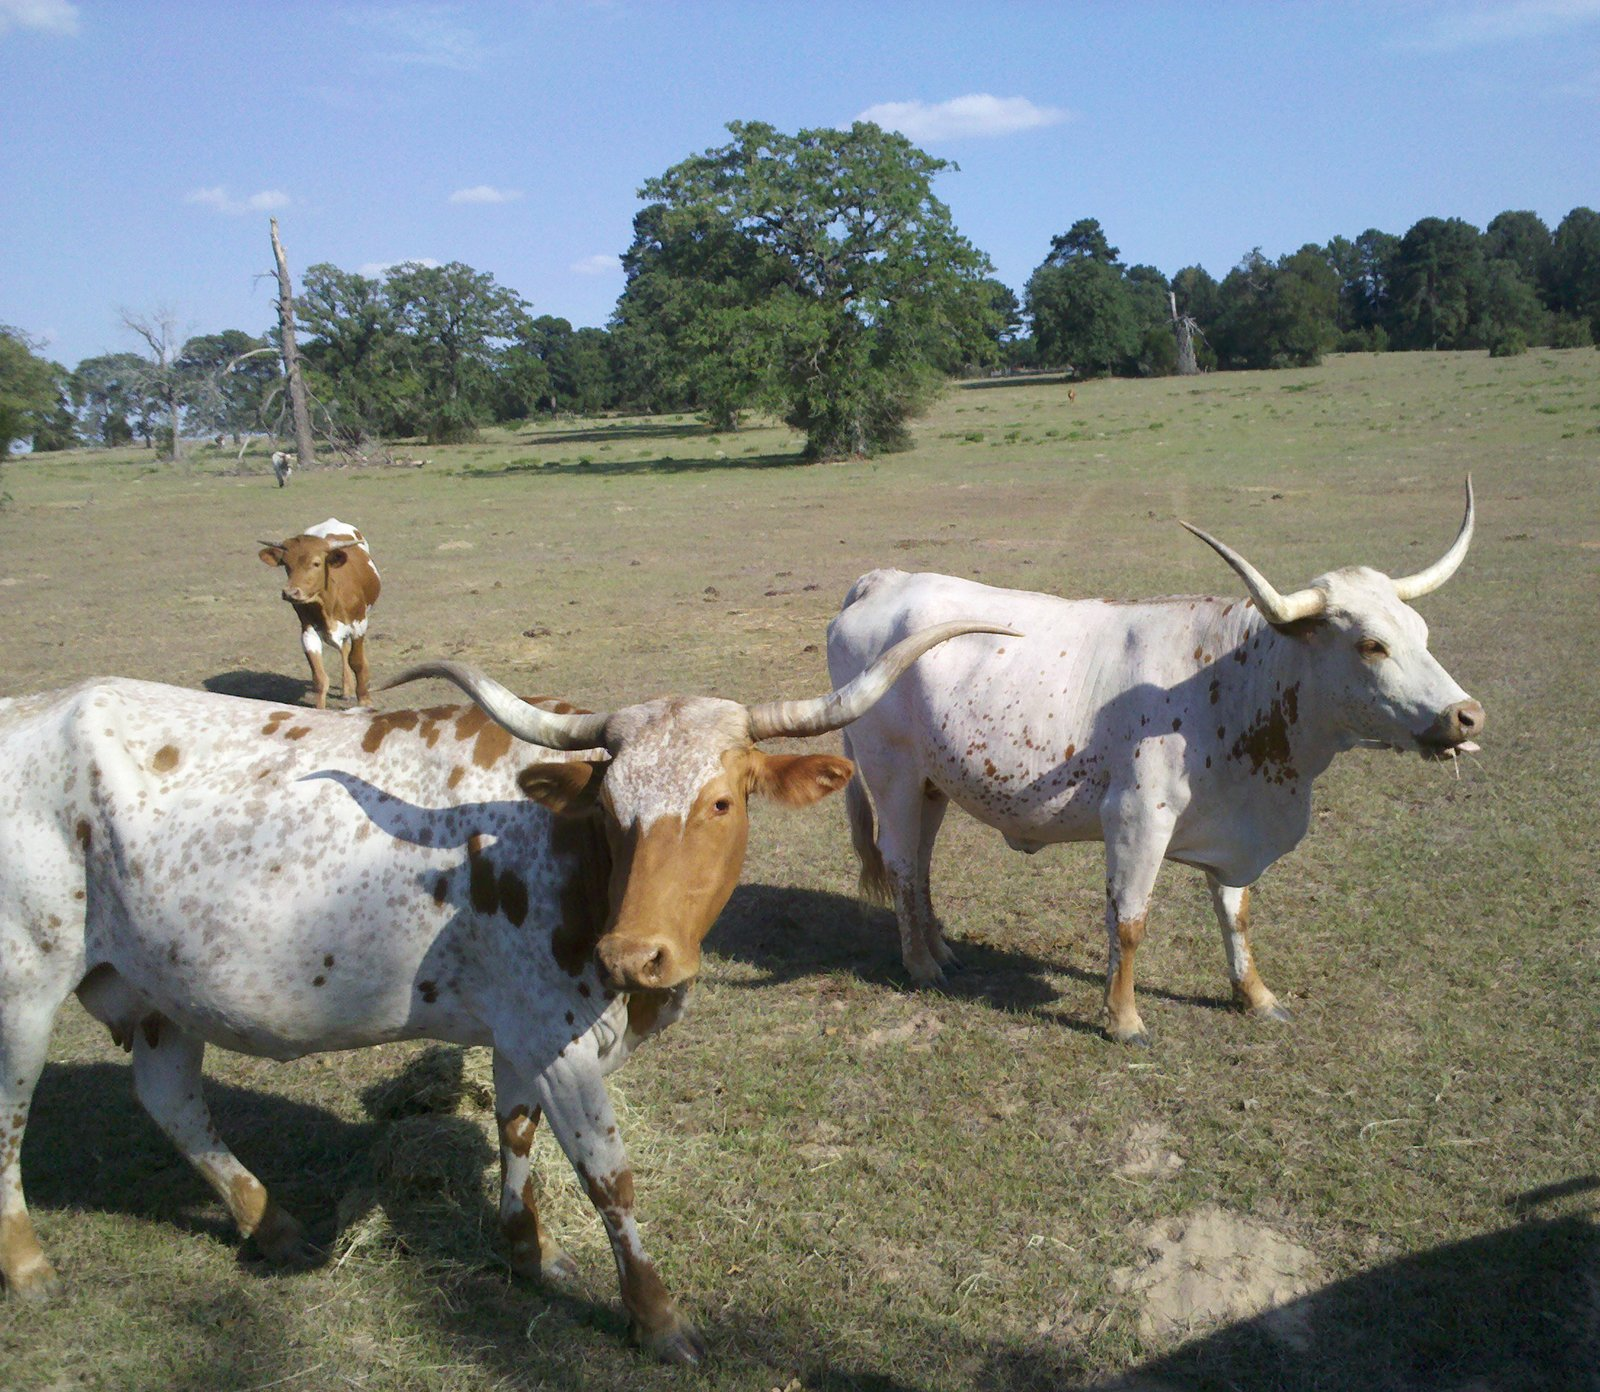 The 9E Ranch owners took us on a tour of their 300 acres, and we were given the special treat of getting a close-up hello from their 12 longhorns. From the back of their pick-up truck, we were even able to hand-feed a few.  Three Days in Austin, Texas by Miyoko Ohtake